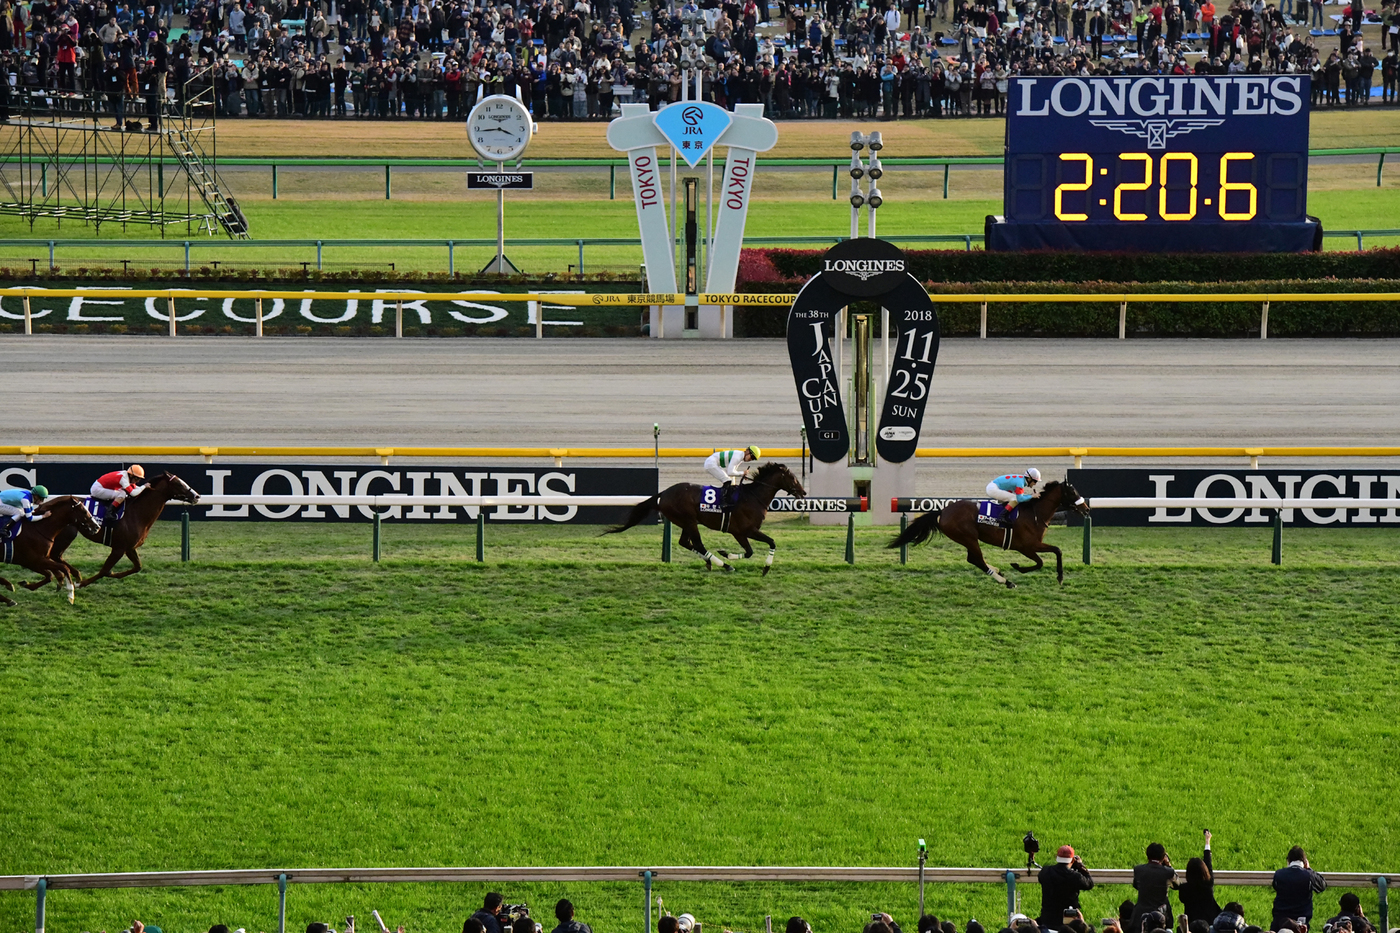 Longines Flat Racing Event: Christophe Lemaire riding Almond Eye galloped to victory in record time at the 38th edition of the Japan Cup in association with Longines  3